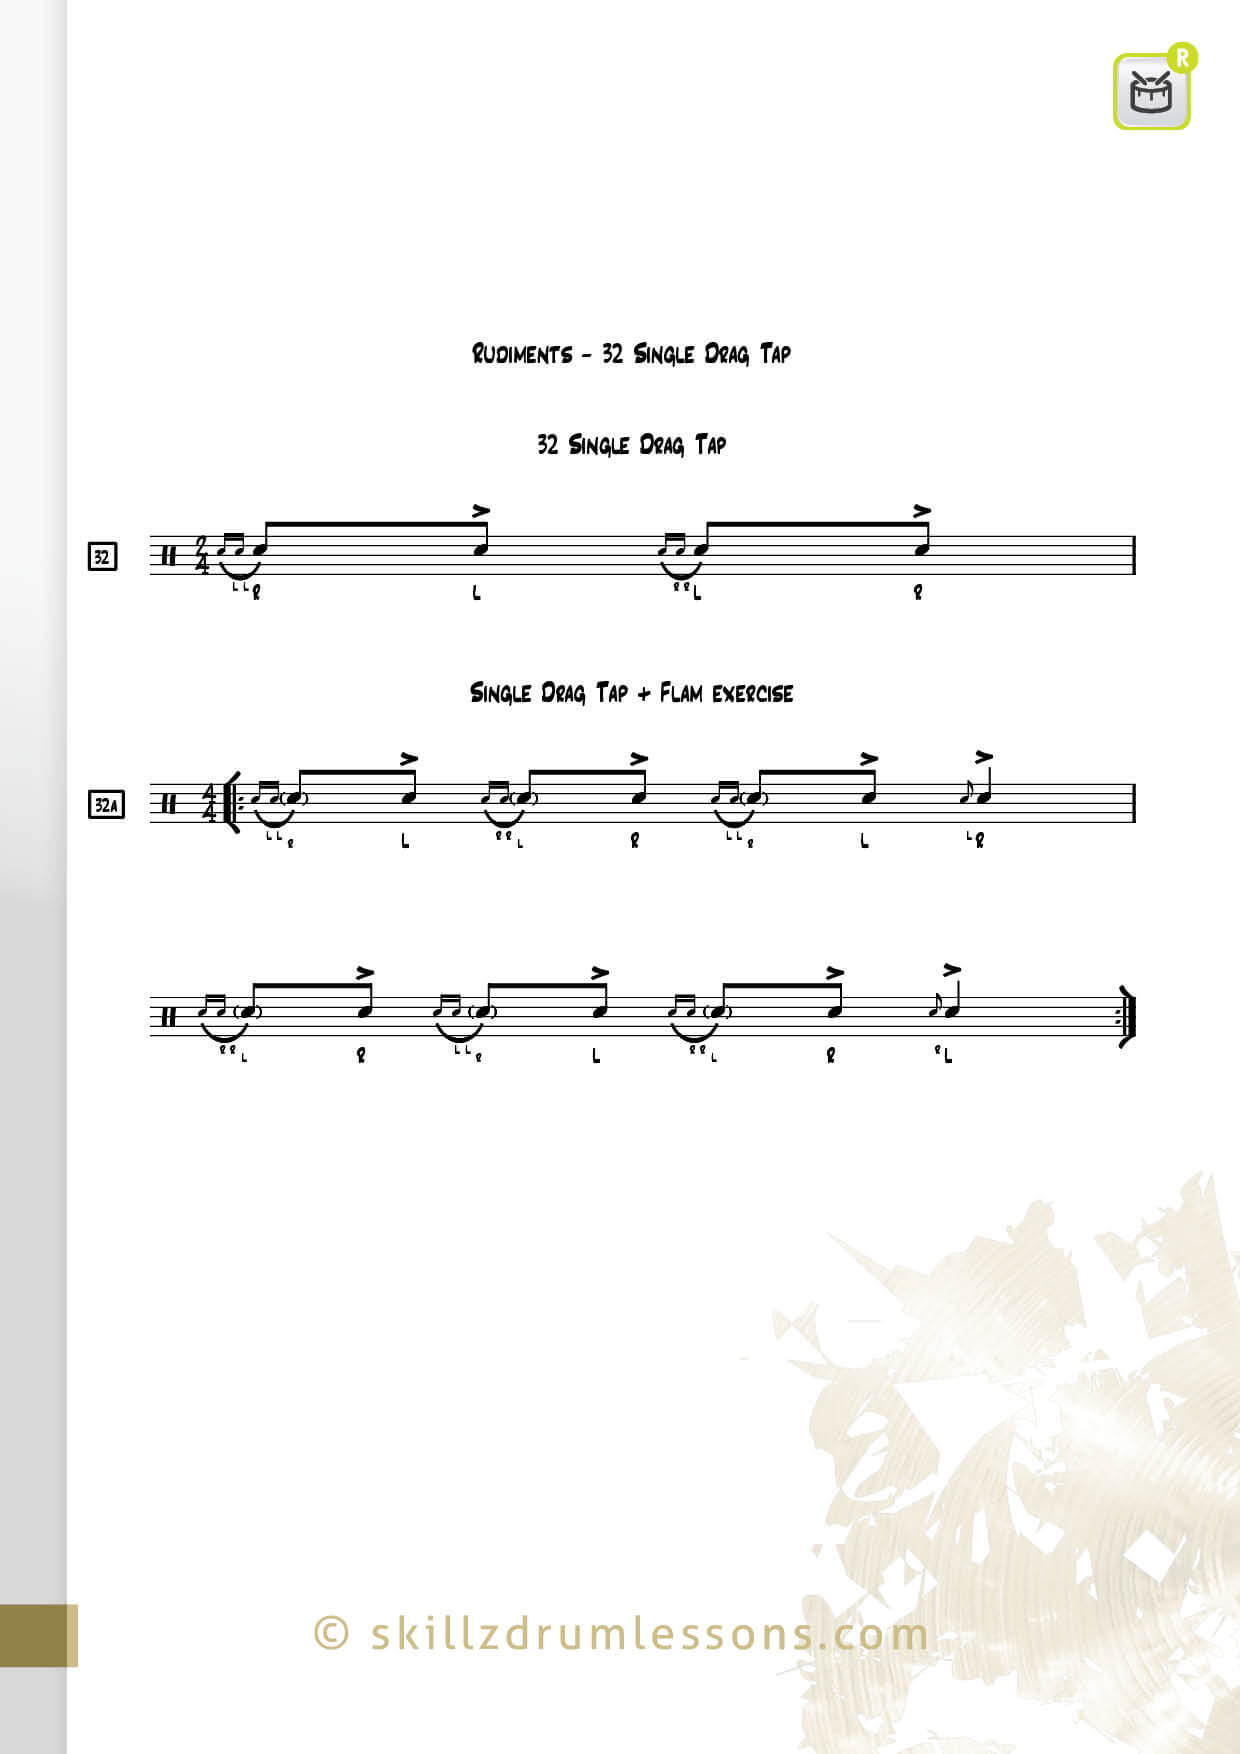 This is an image of the Official 40 Essential P.A.S. Rudiments #32 The Single Drag Tap by Skillz Drum Lessons